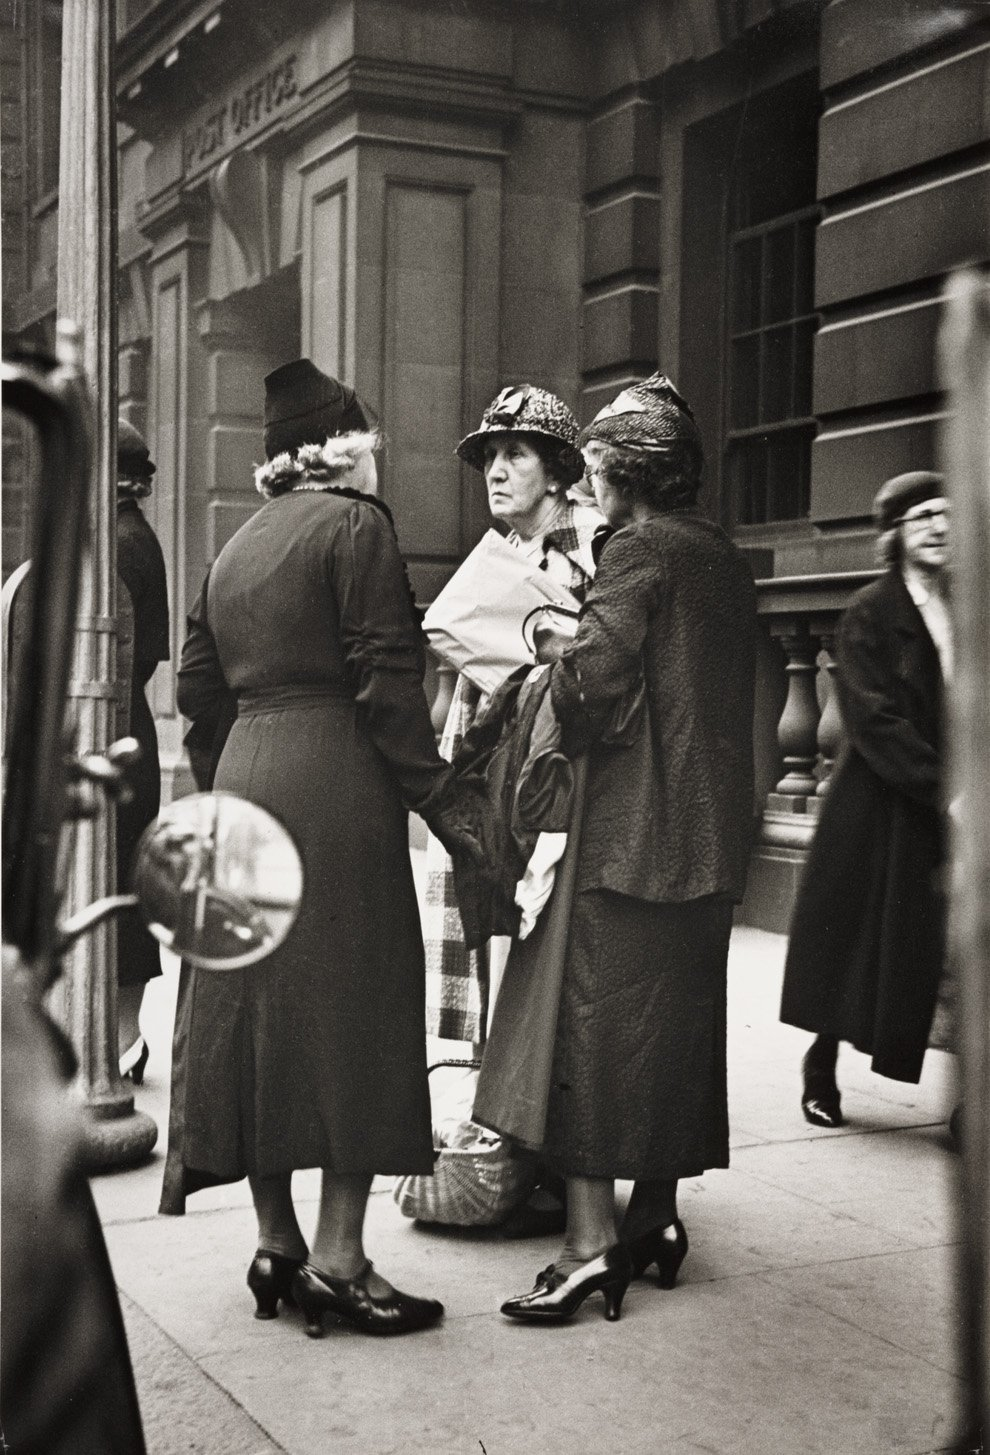 Townswomen Dressed for Market, c.1937, by Humphrey Spender